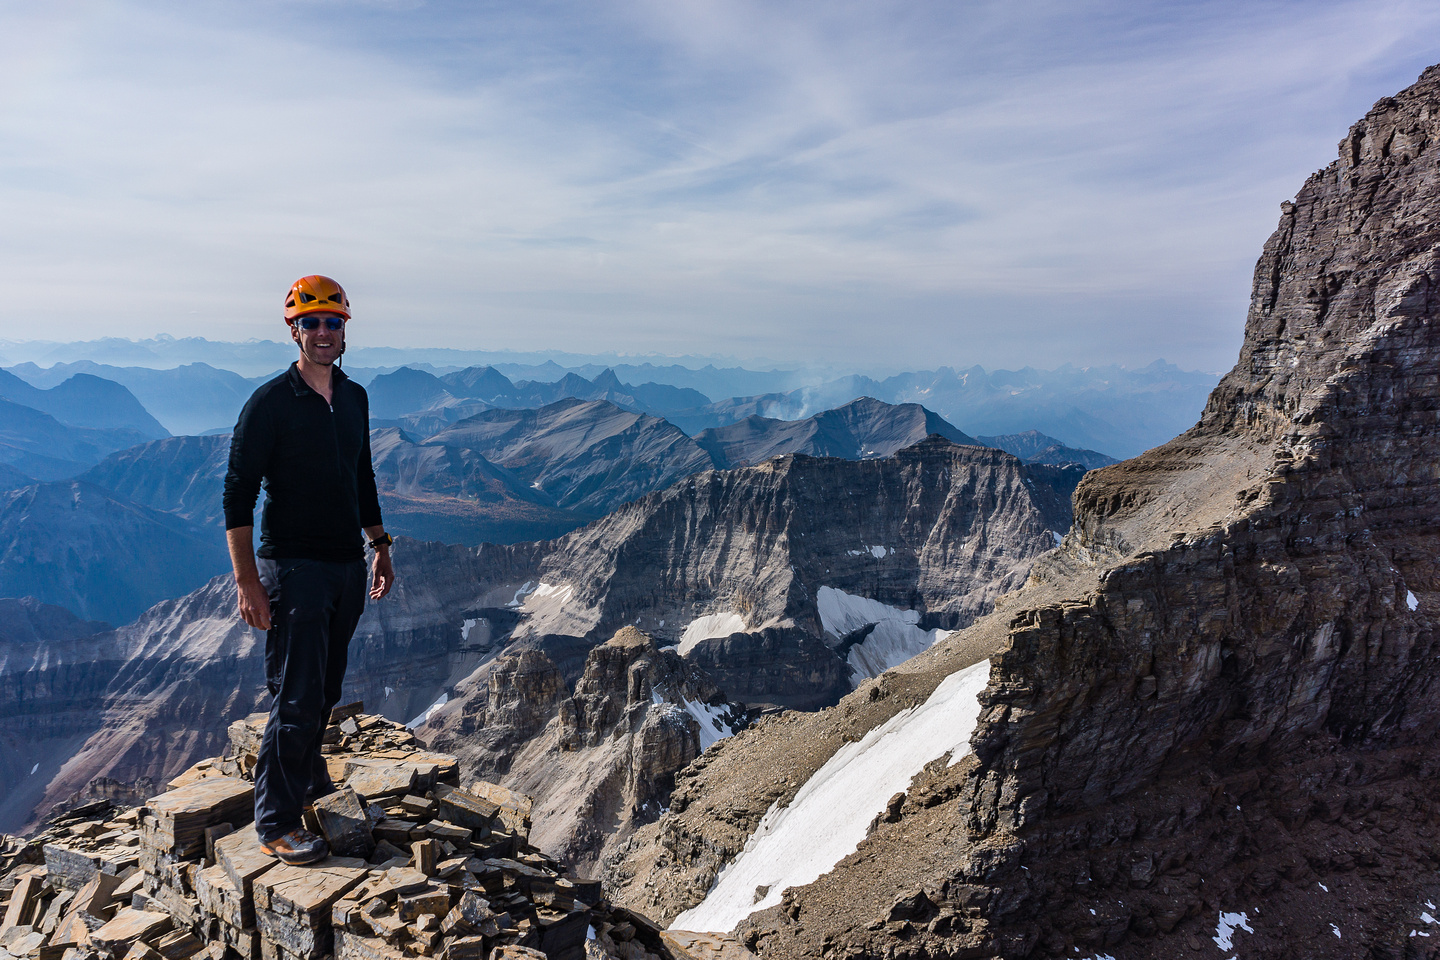 Vern on the summit of Lunette Peak. Assiniboine's SW face and east face to the right.